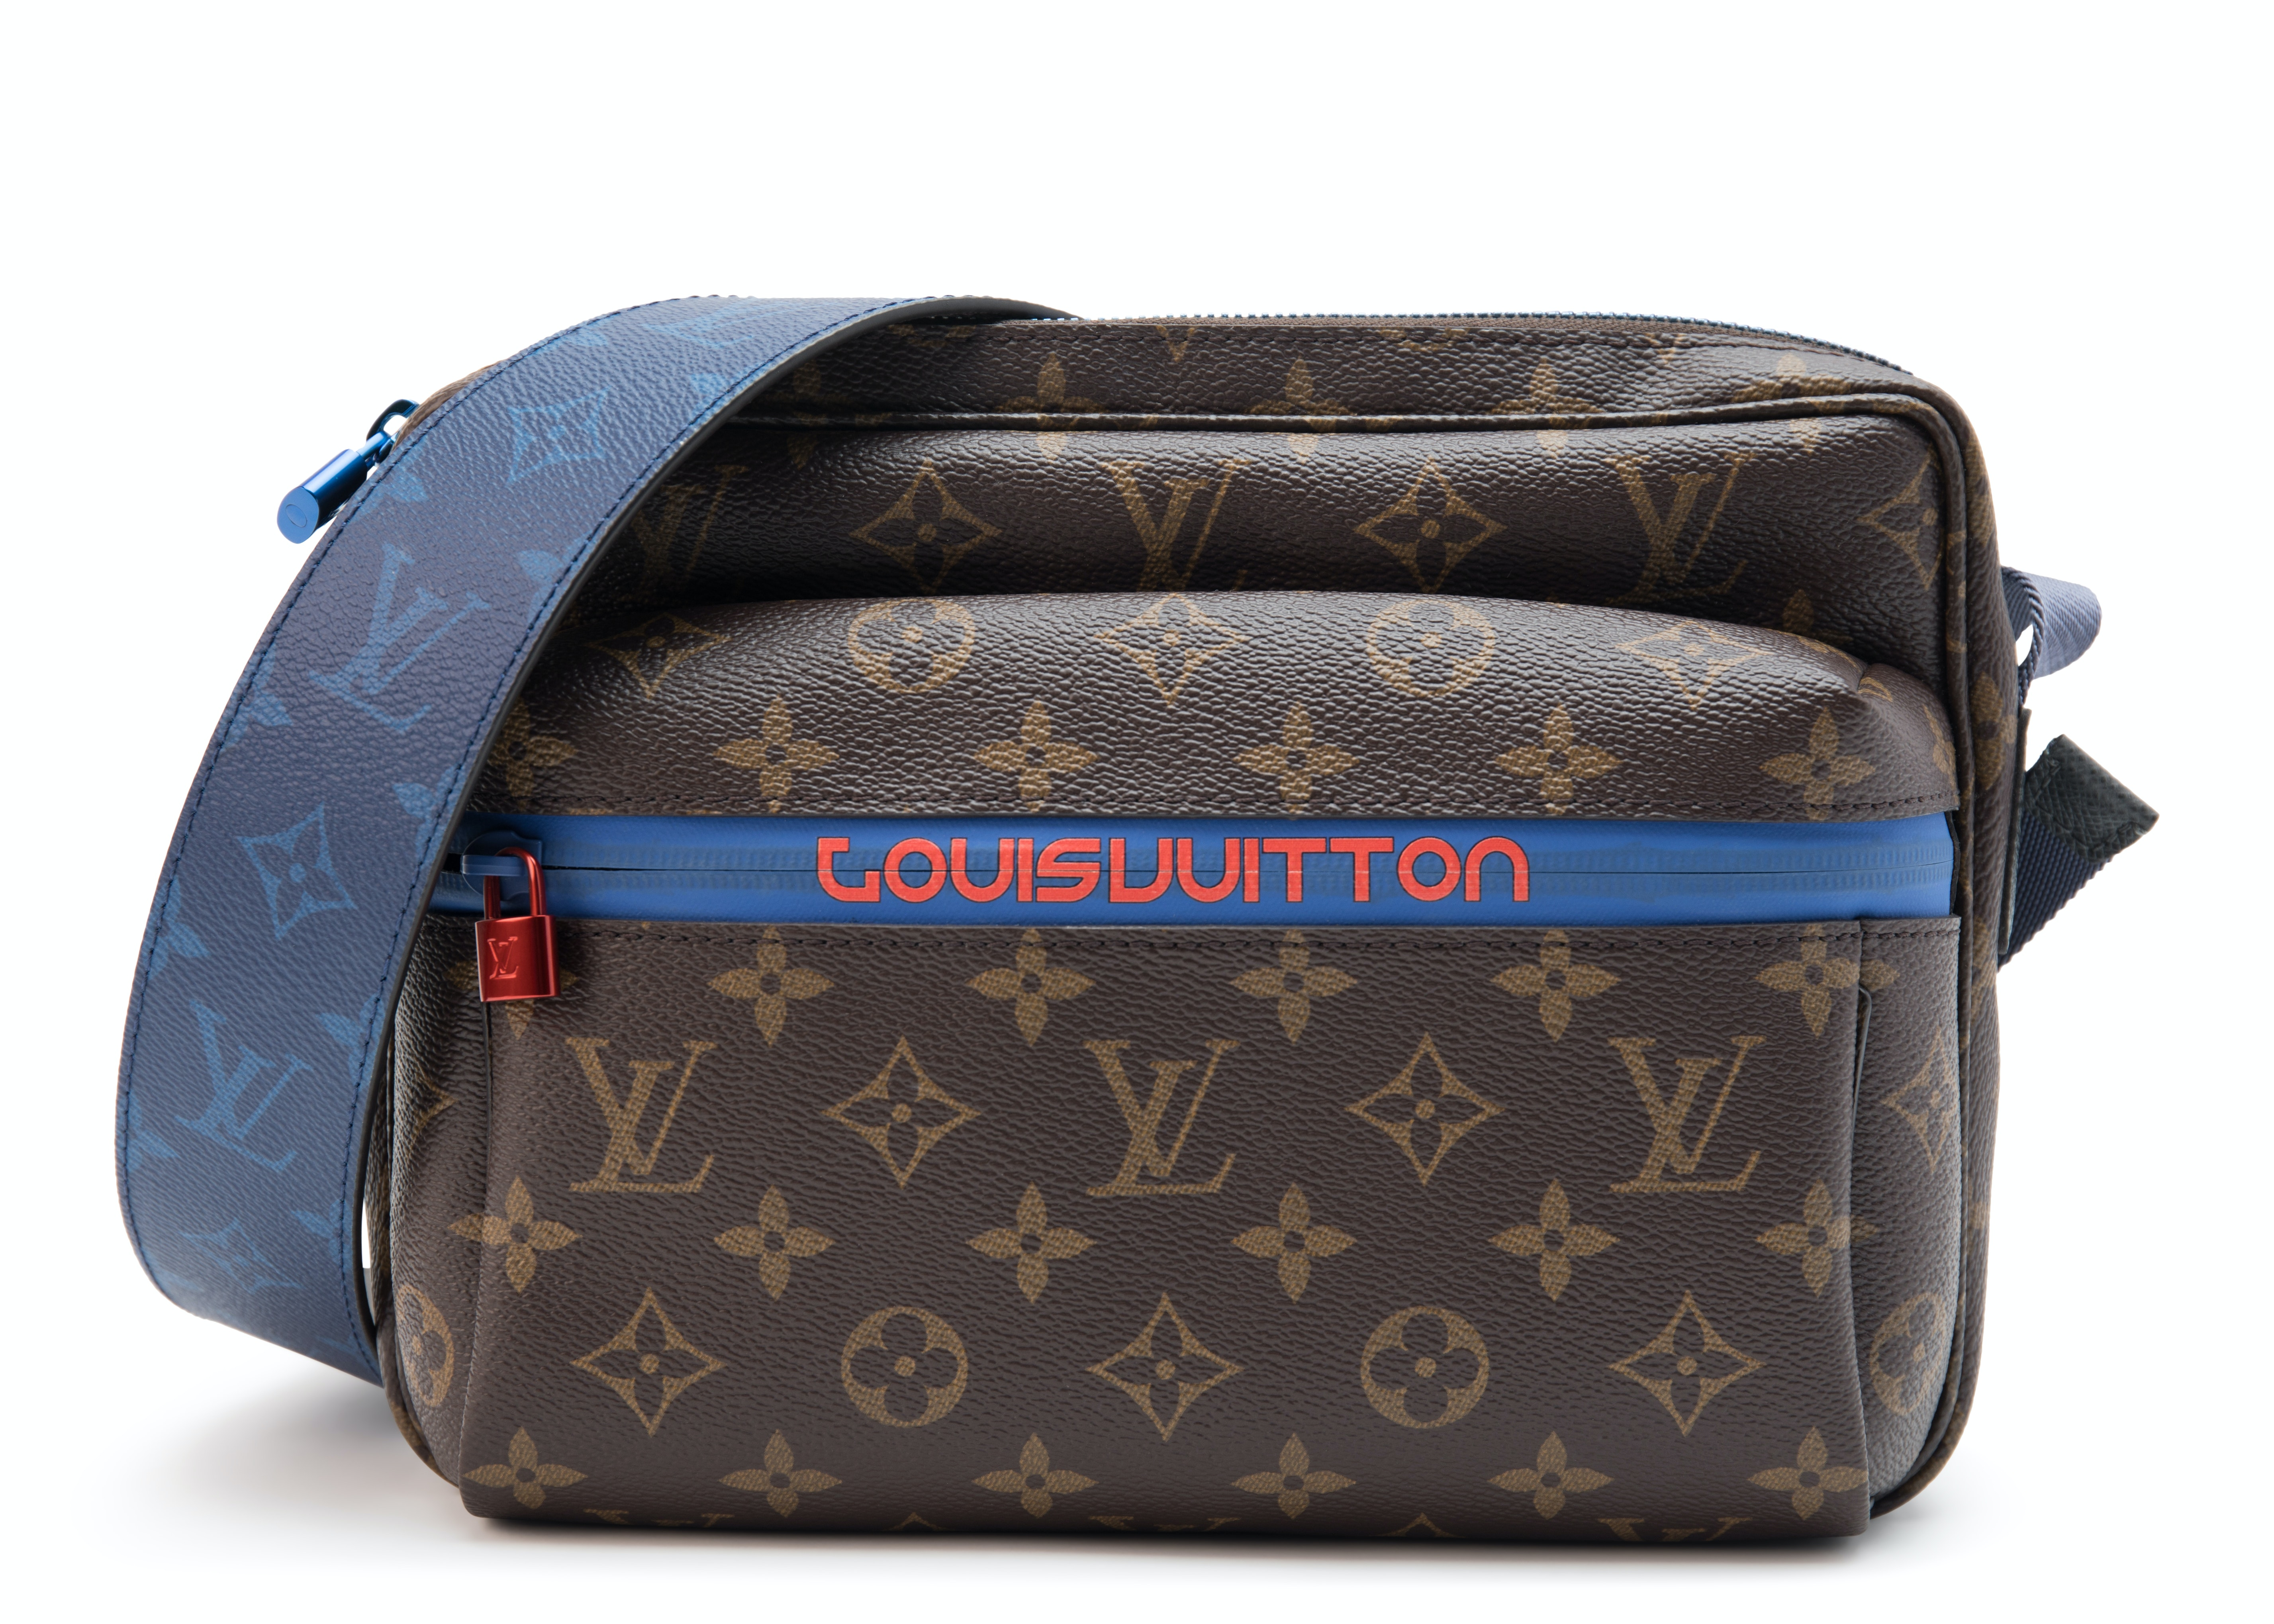 Louis Vuitton Messenger Monogram Outdoor PM Brown Blue